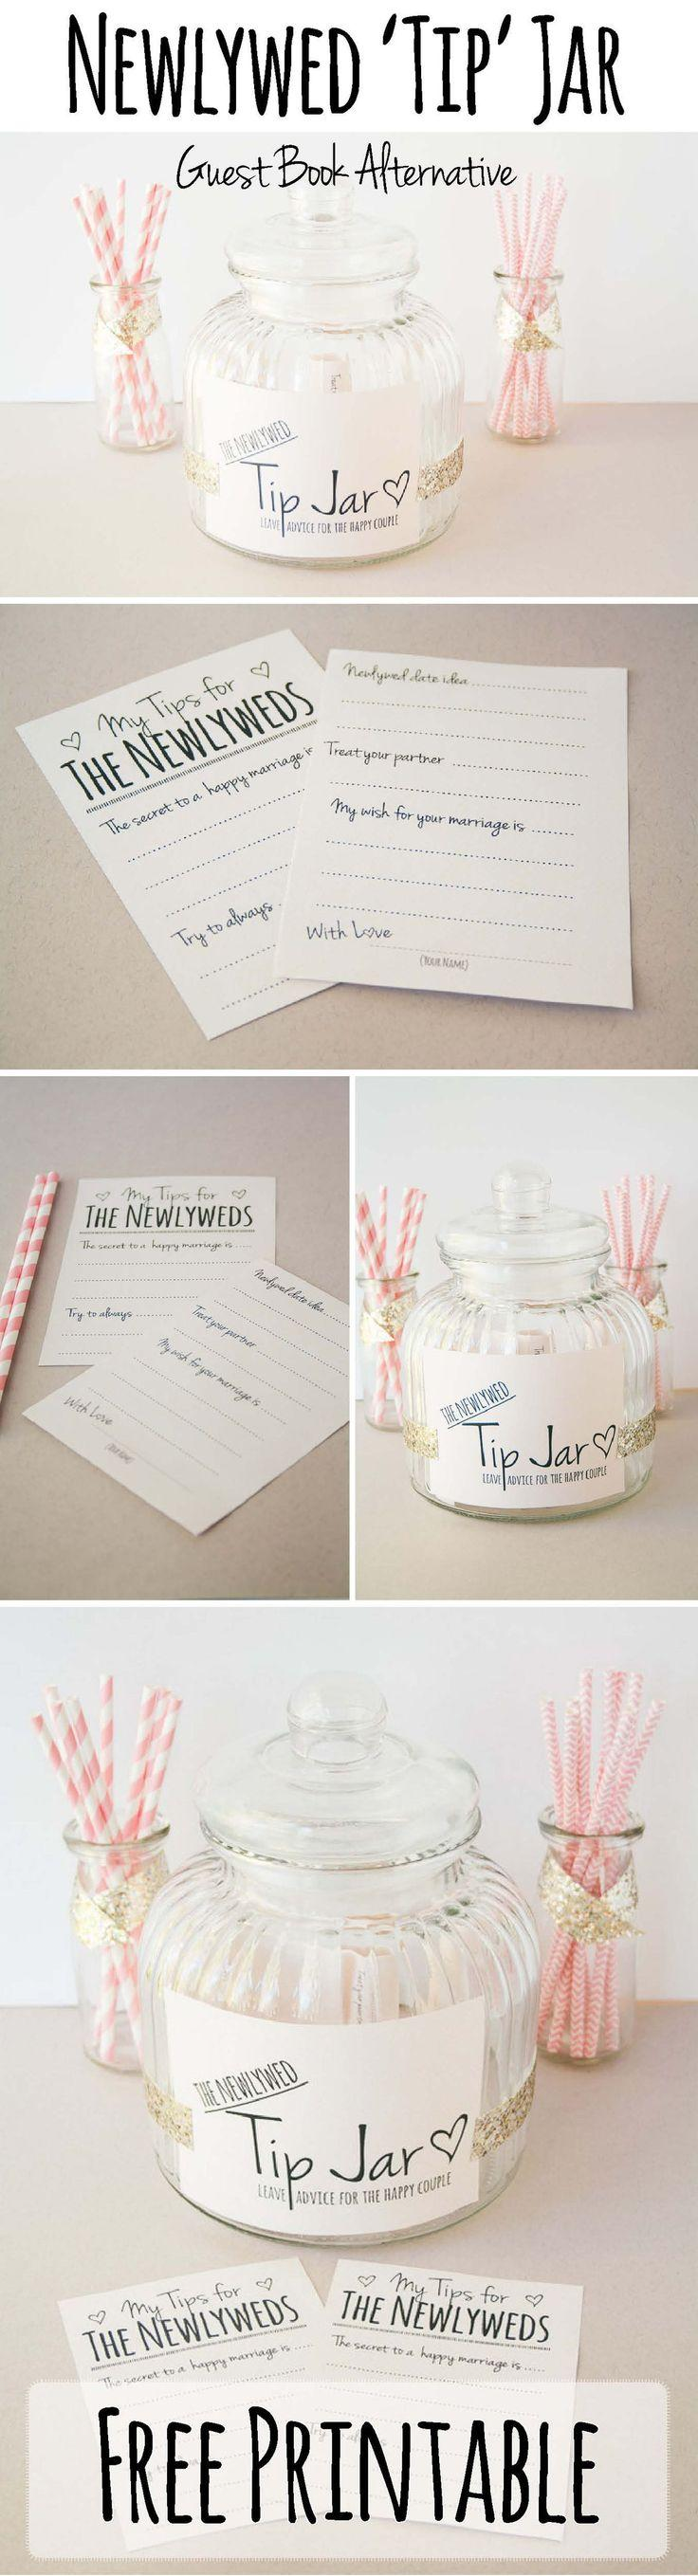 "Wedding - ""Leave Us A Tip"" Jar - FREE PRINTABLE Guestbook Alternative"